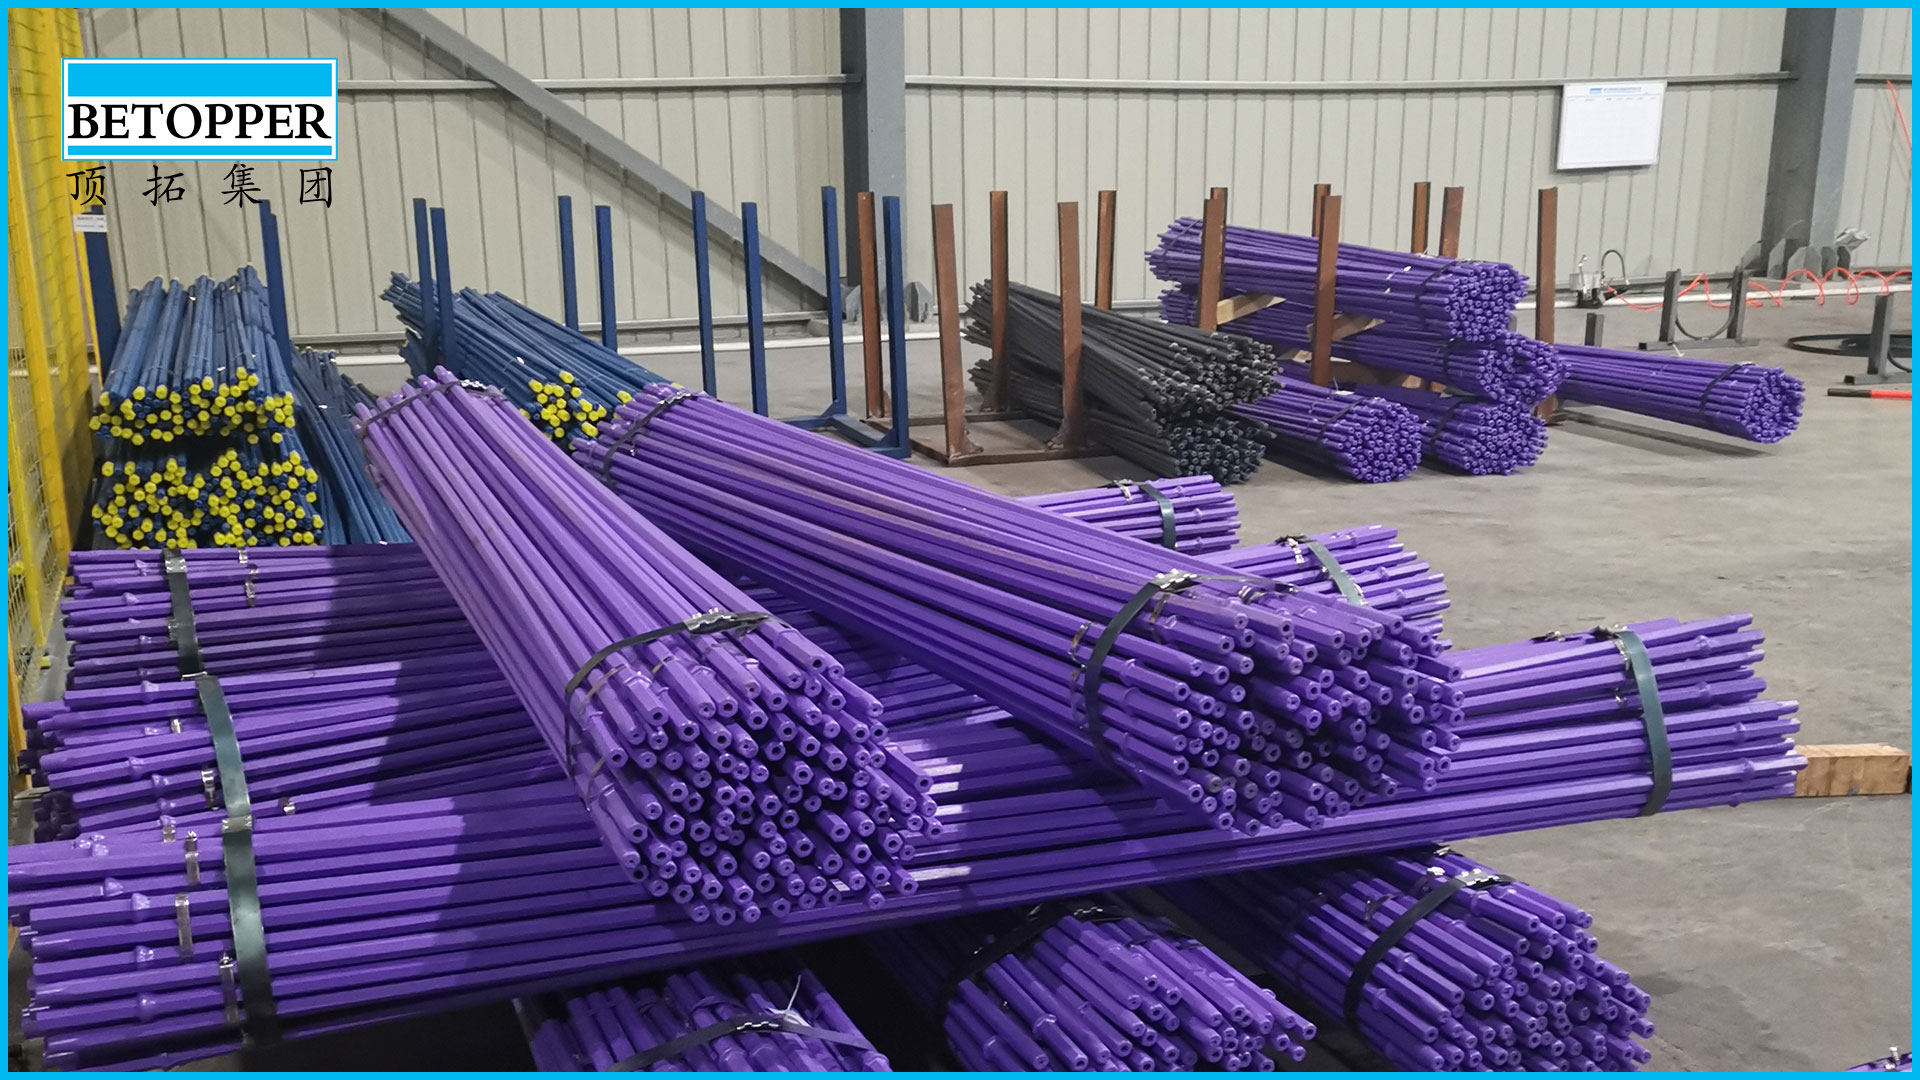 Betopper Group Drill Rod Factory Warehousing and Delivery Area